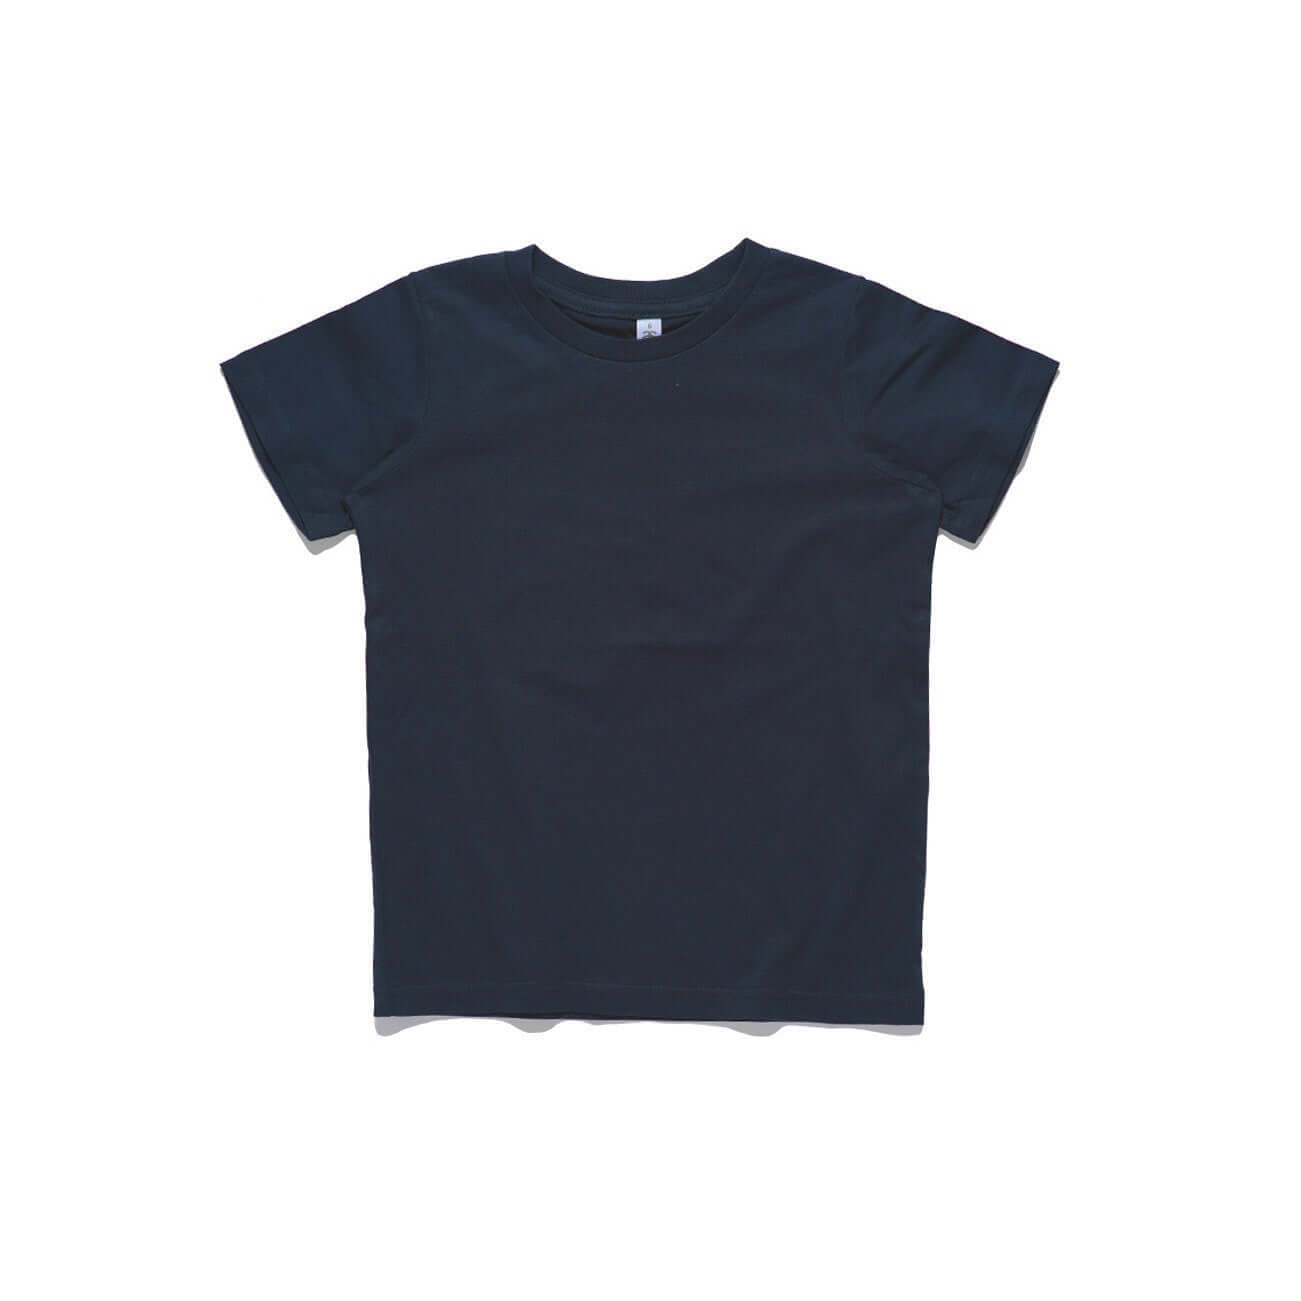 AS Colour Basic Kids Cotton Crew Neck Tee Shirt White, Navy, Coal and Grey Marl - Frankie's Story - 2